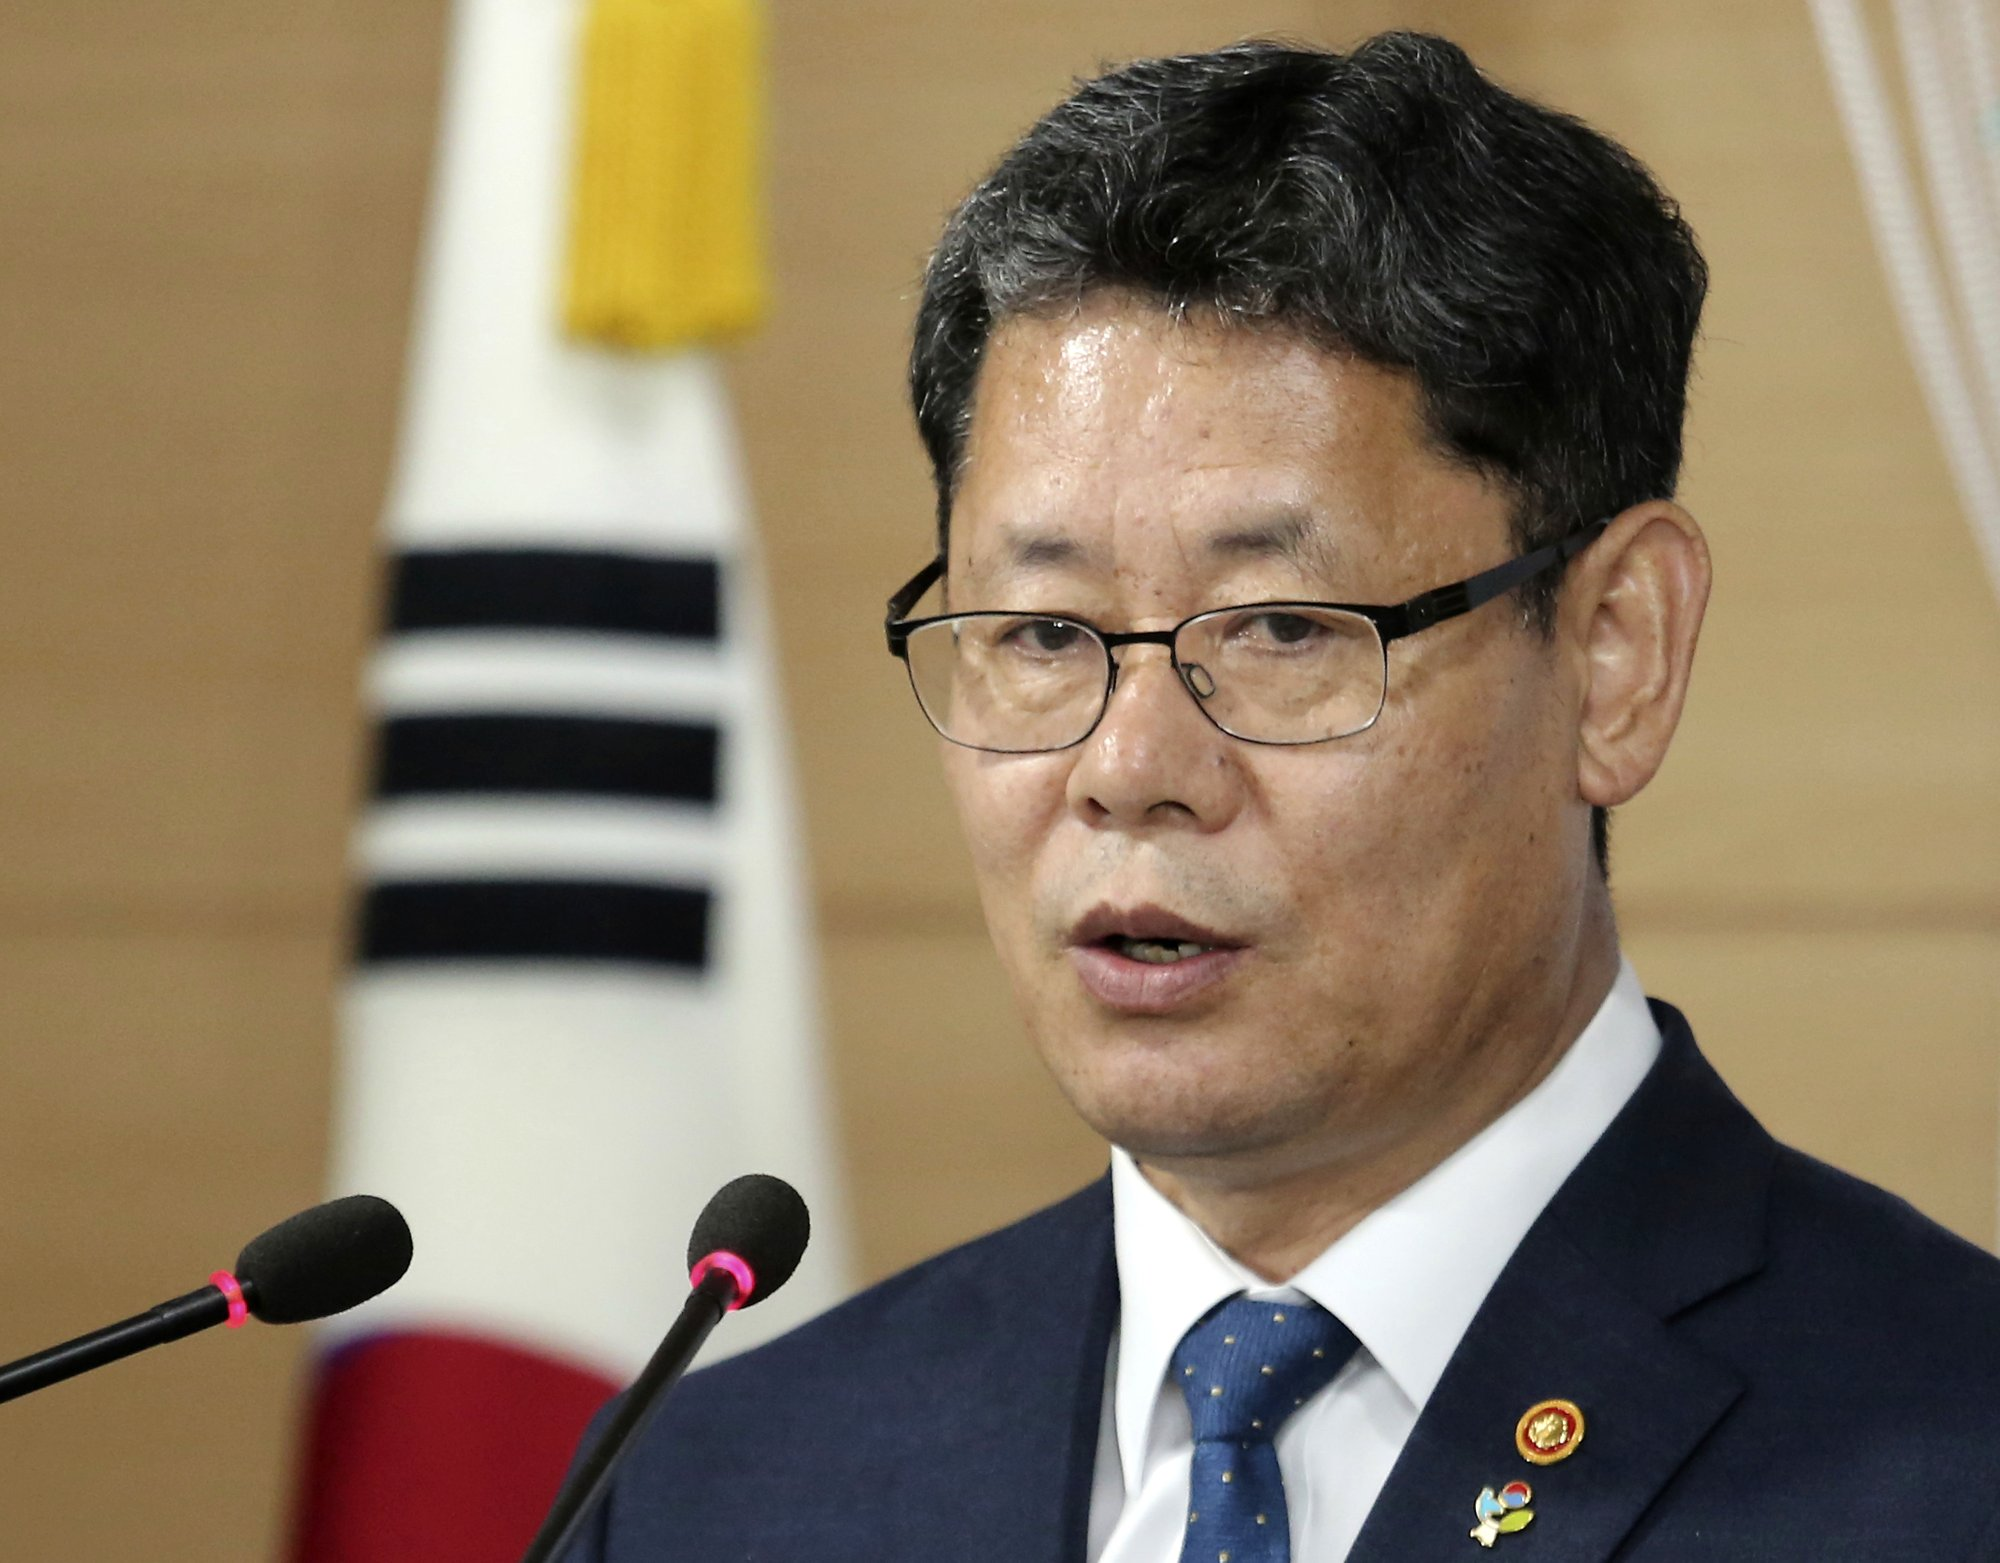 South Korea to send 50,000 tons of rice to North Korea